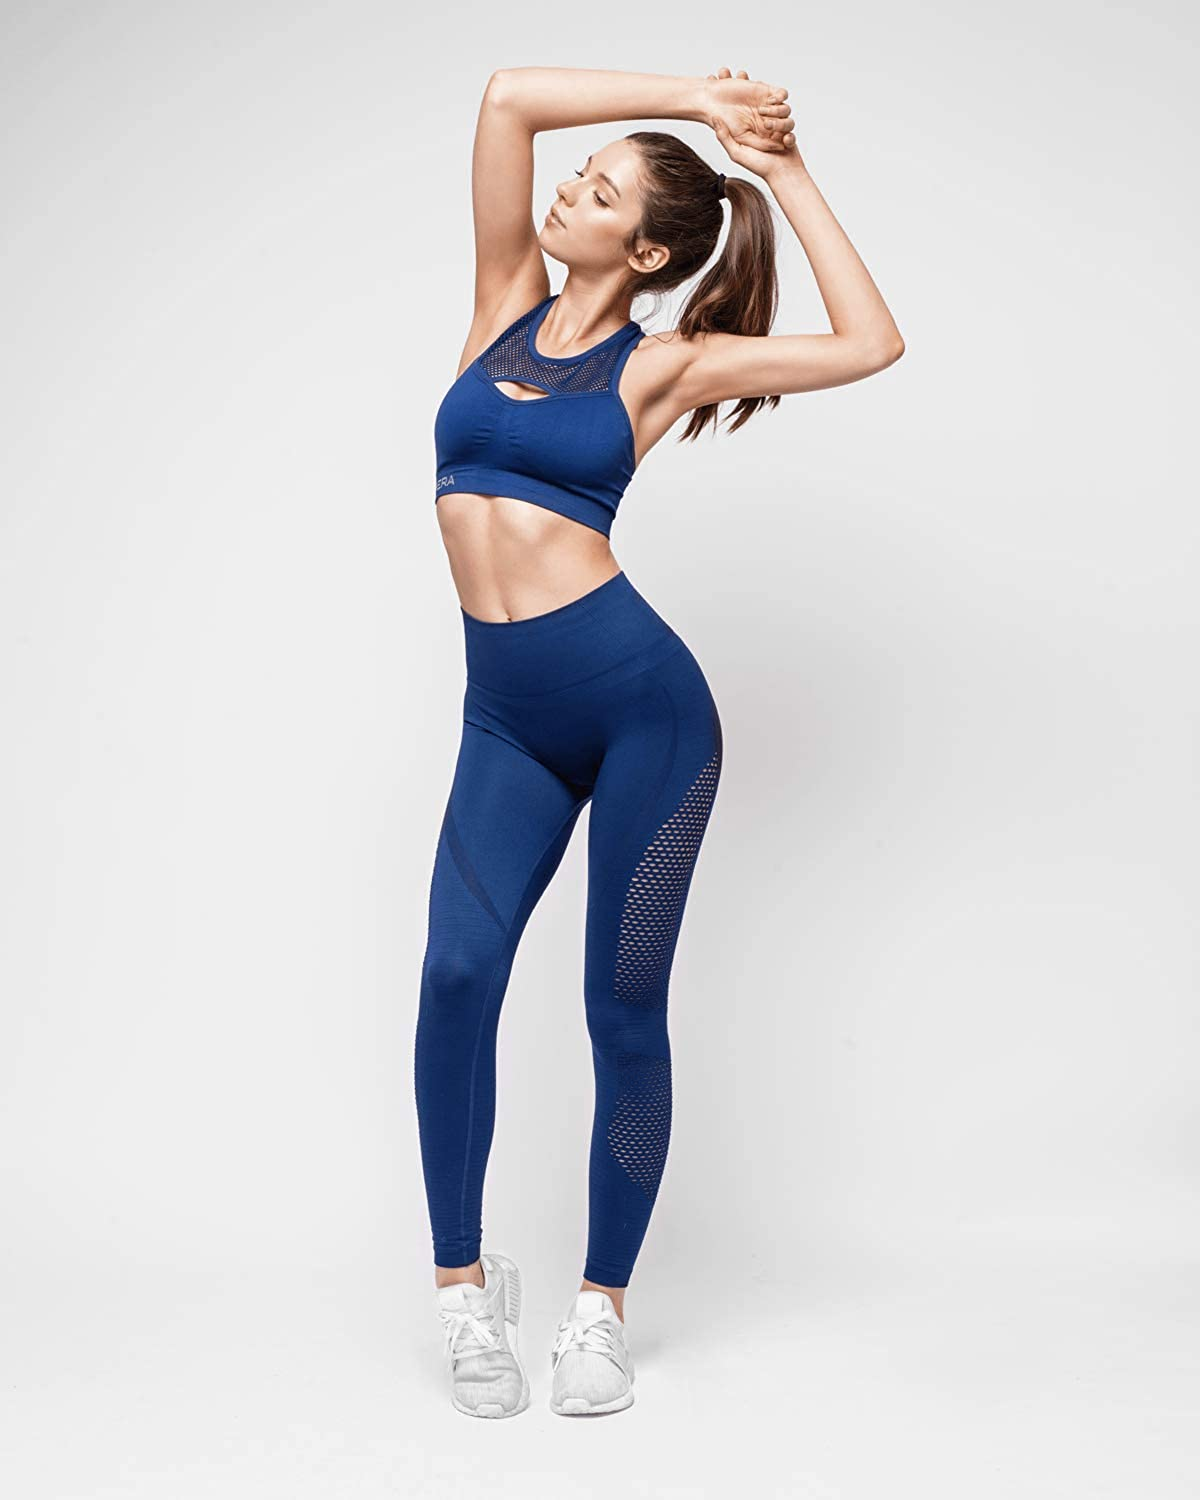 Womens HERA x HERO Le Papillon Seamless Stretch Knit Leggings for Women Non See Thru Our Signature Aesthetic Fit